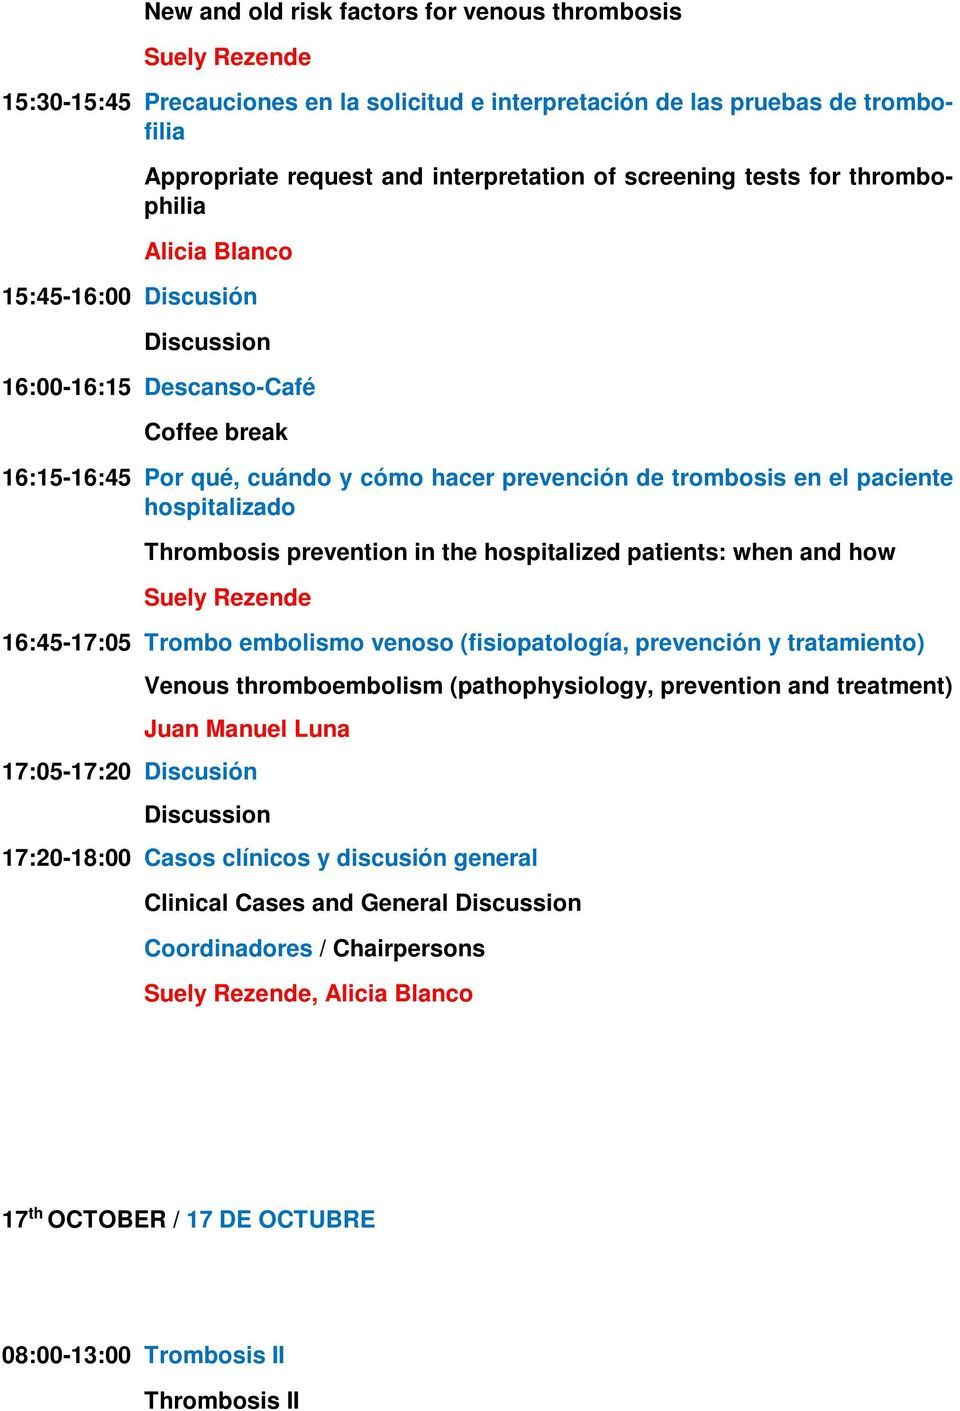 hospitalizado Thrombosis prevention in the hospitalized patients: when and how Suely Rezende 16:45-17:05 Trombo embolismo venoso (fisiopatología, prevención y tratamiento) Venous thromboembolism